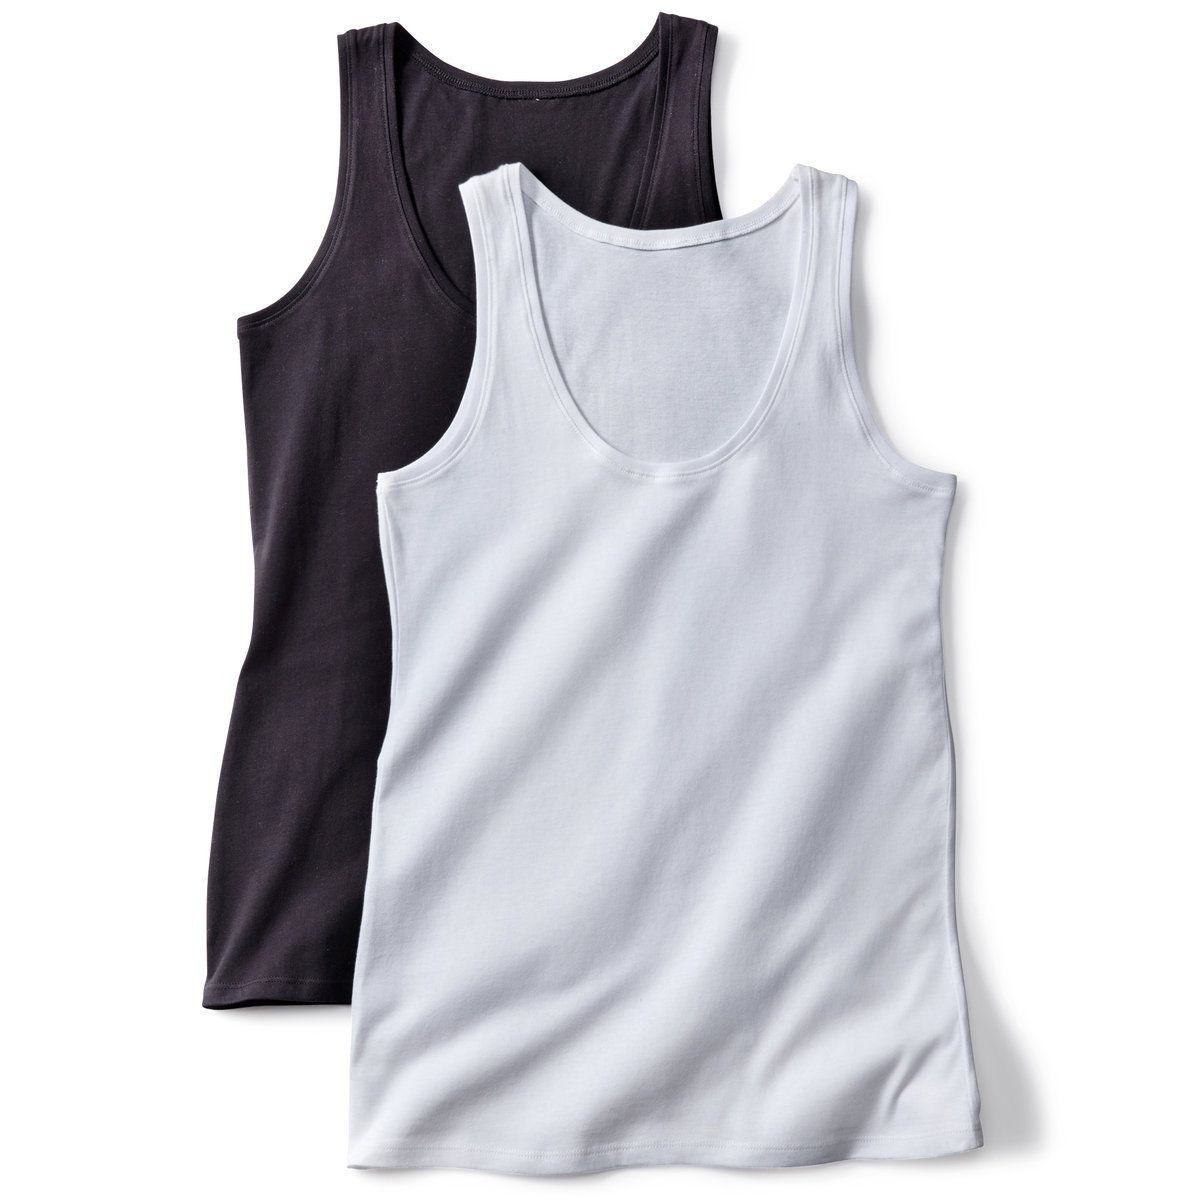 White And Pale Yellow Pack Of 2 Tank Tops - La Redoute